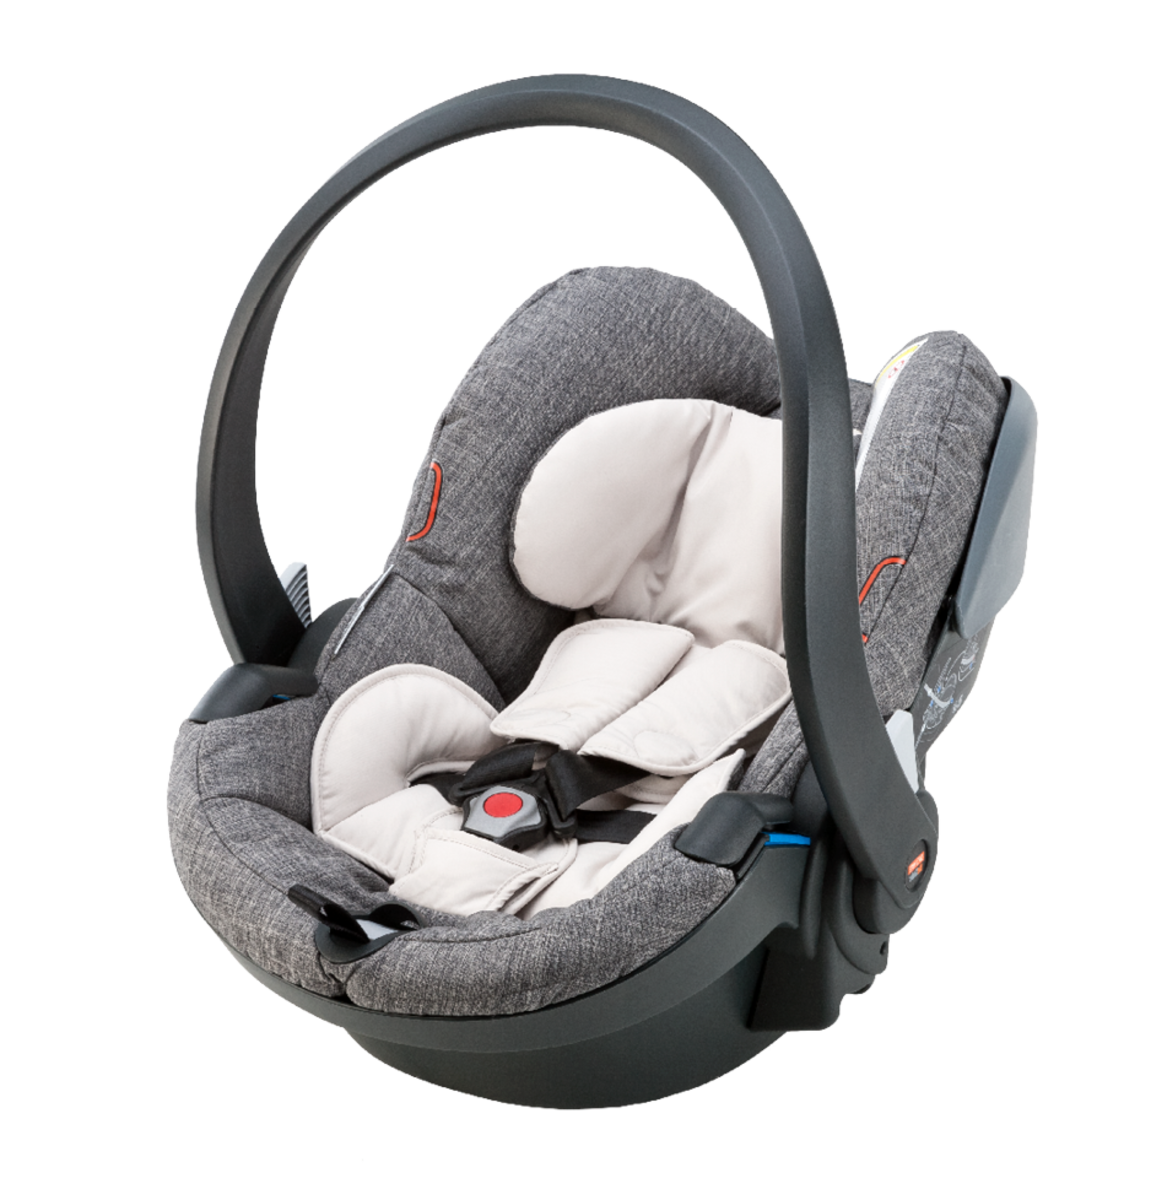 Car Seats For Newborn Infant And Baby